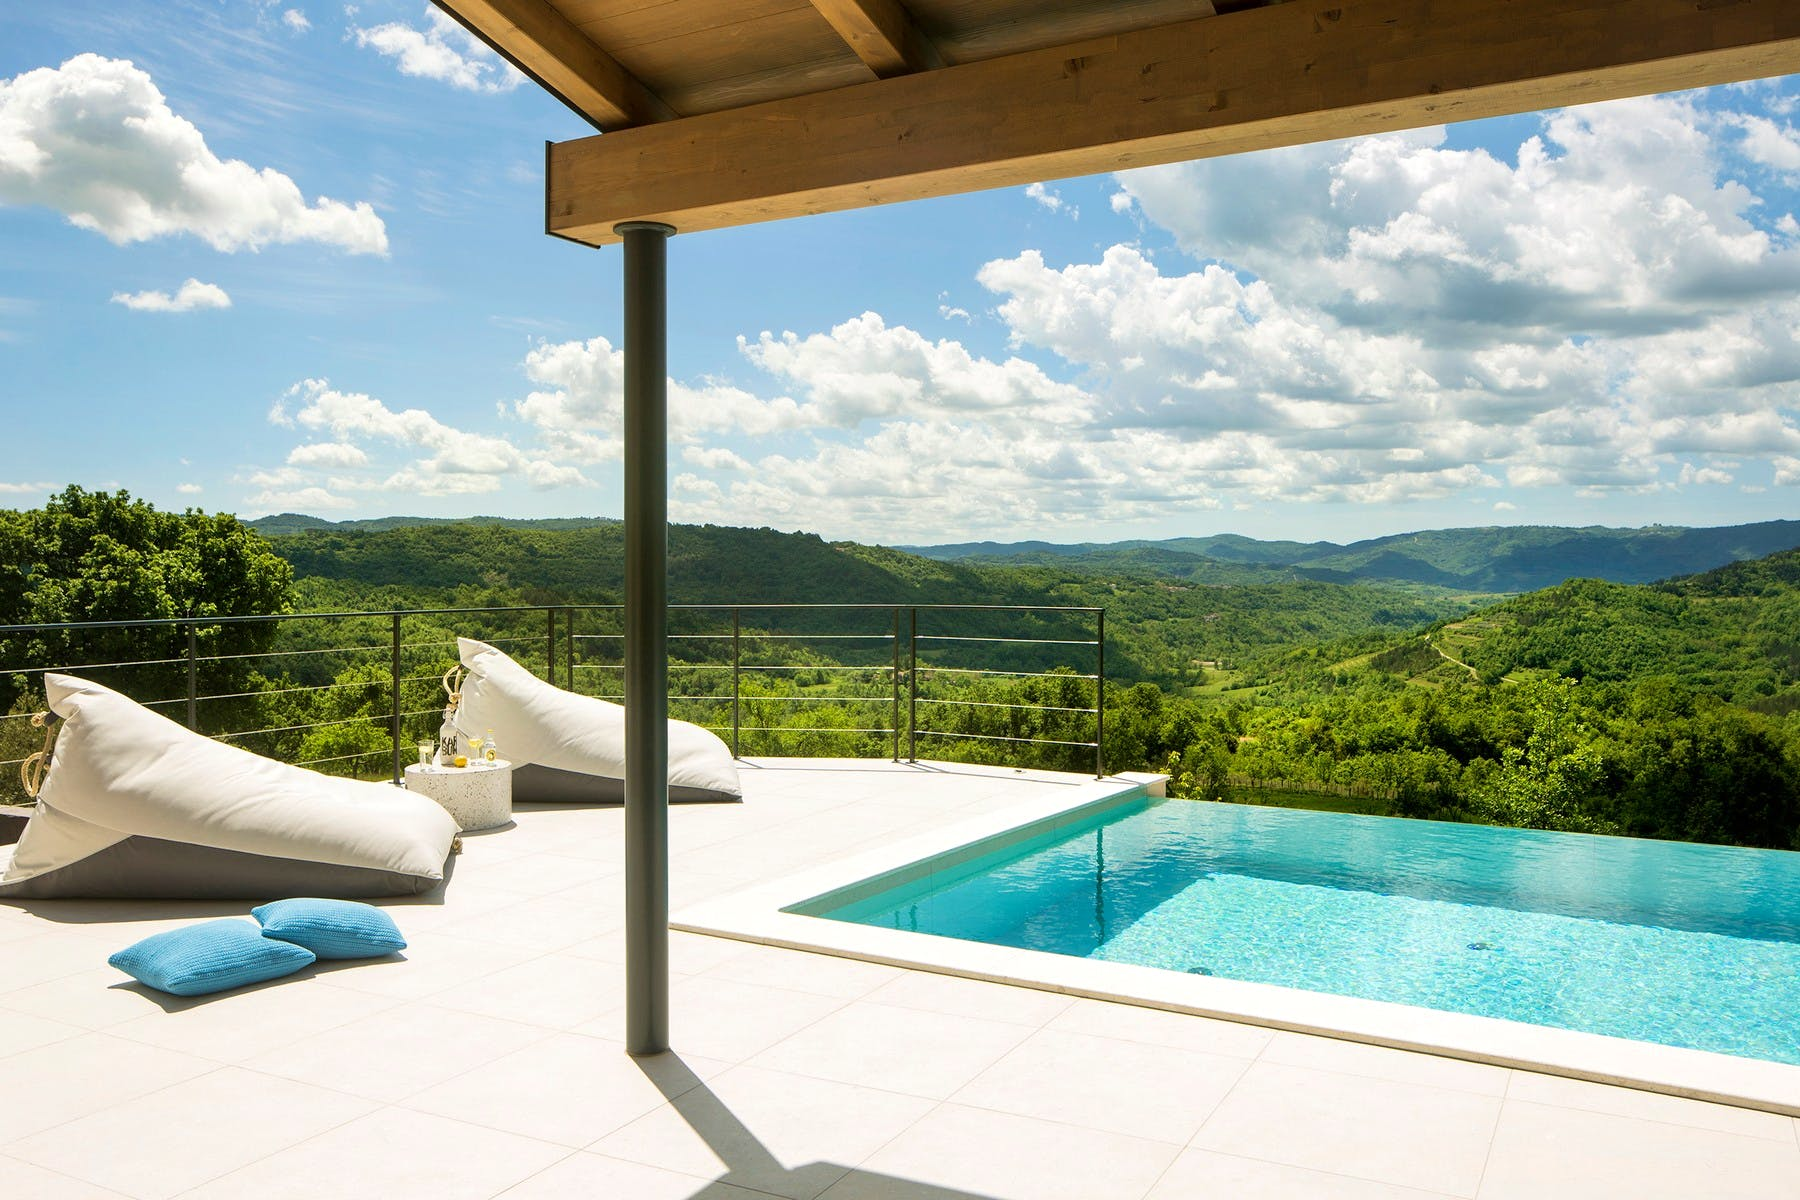 View from the terrace with swimming pool and sundeck